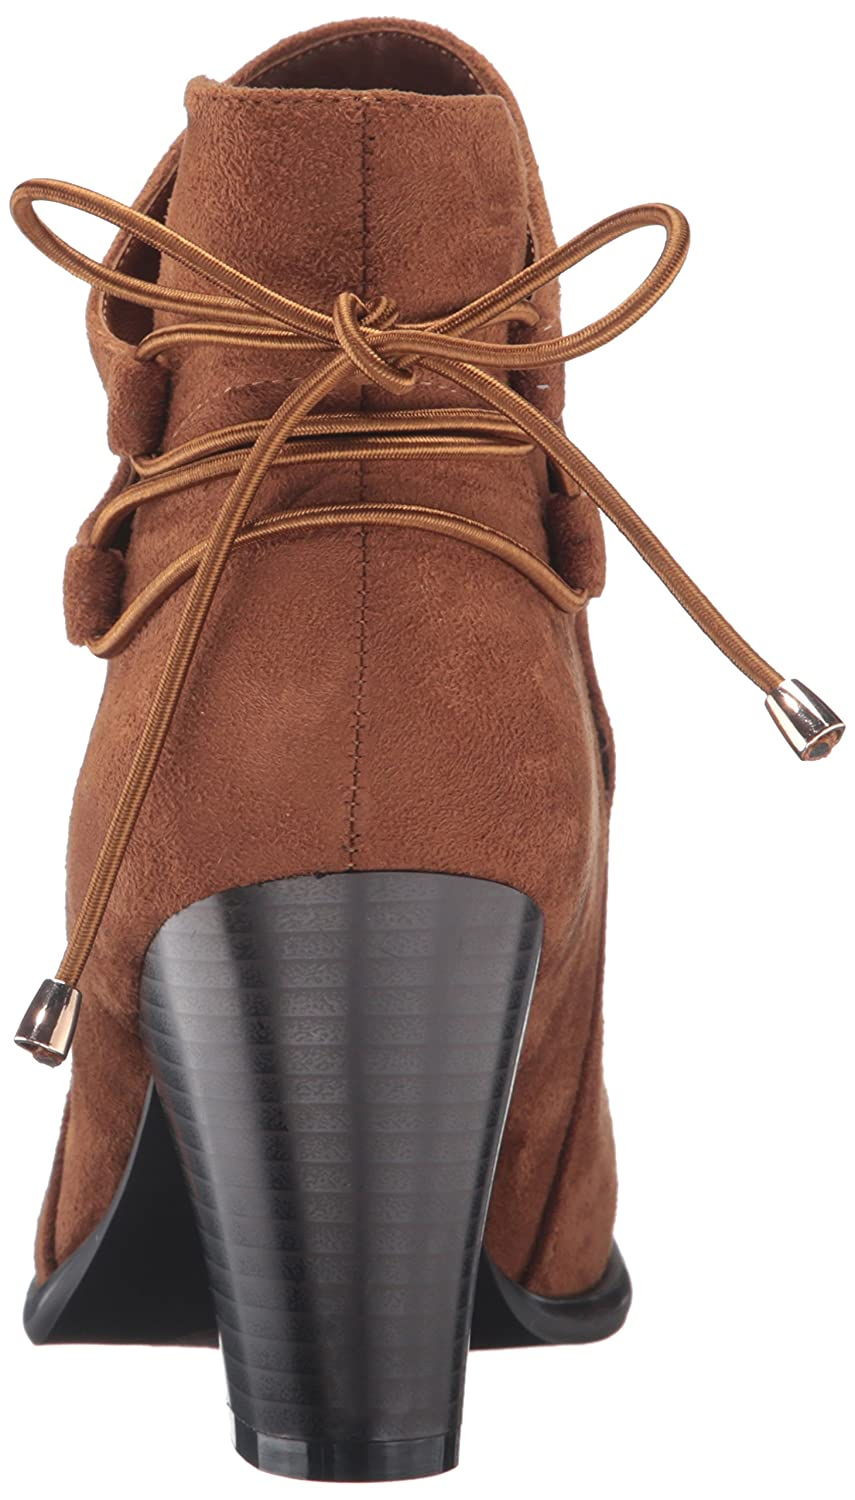 Dirty Laundry by Chinese Laundry Womens Wing It Boot